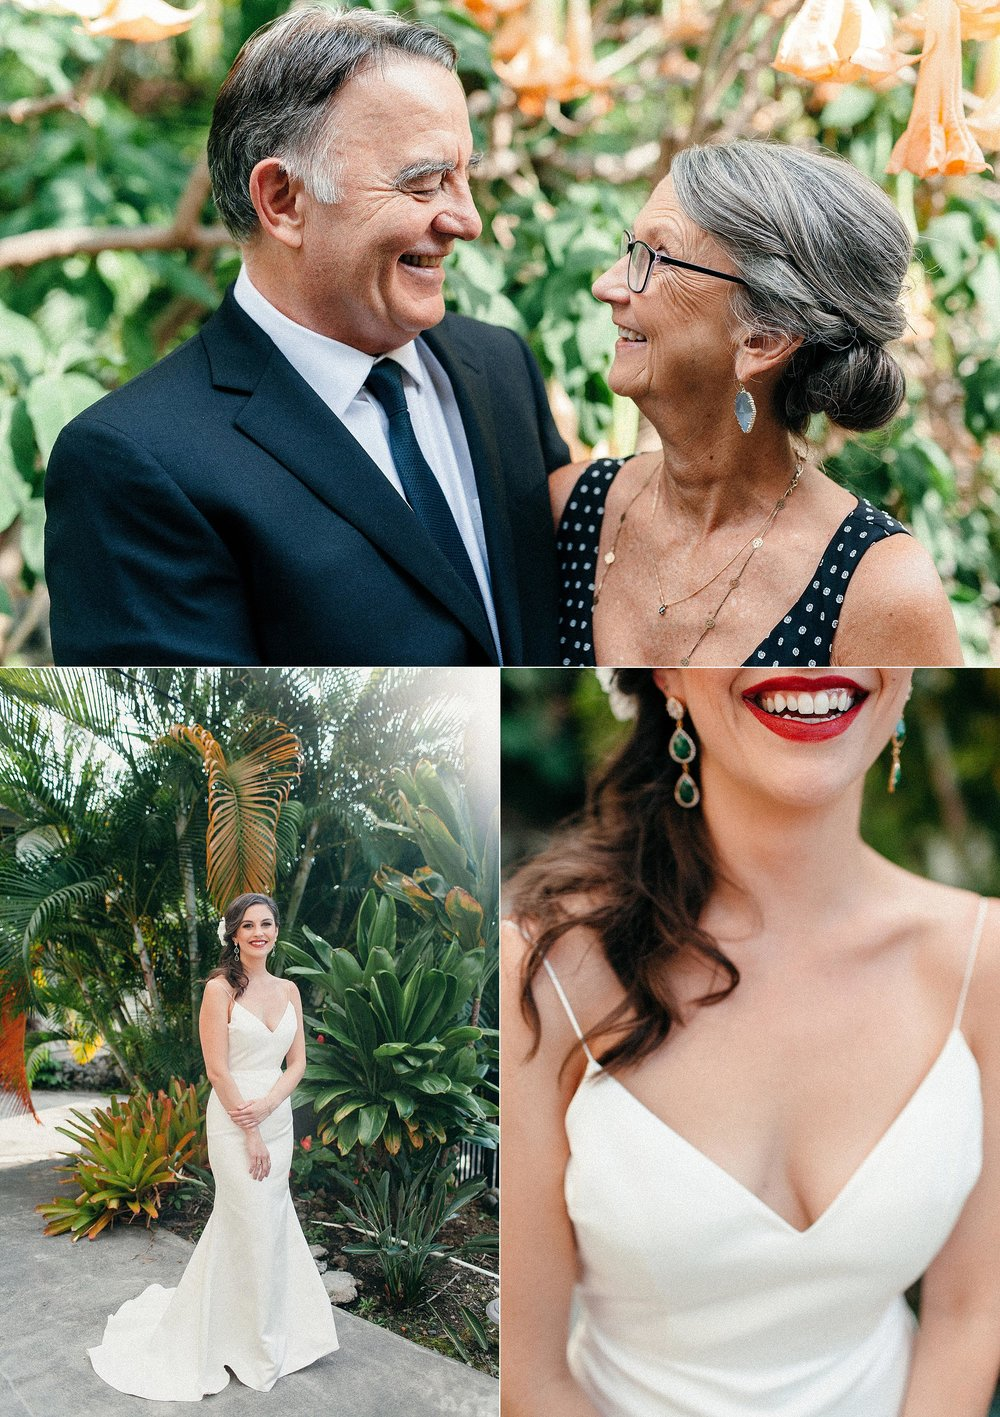 Kona-Big-Island-Hawaii-New-Years-Eve-Wedding-with-Ceremony-at-Living-Stones-Church-and-Reception-at-Daylight-Mind-Coffee_0006.jpg